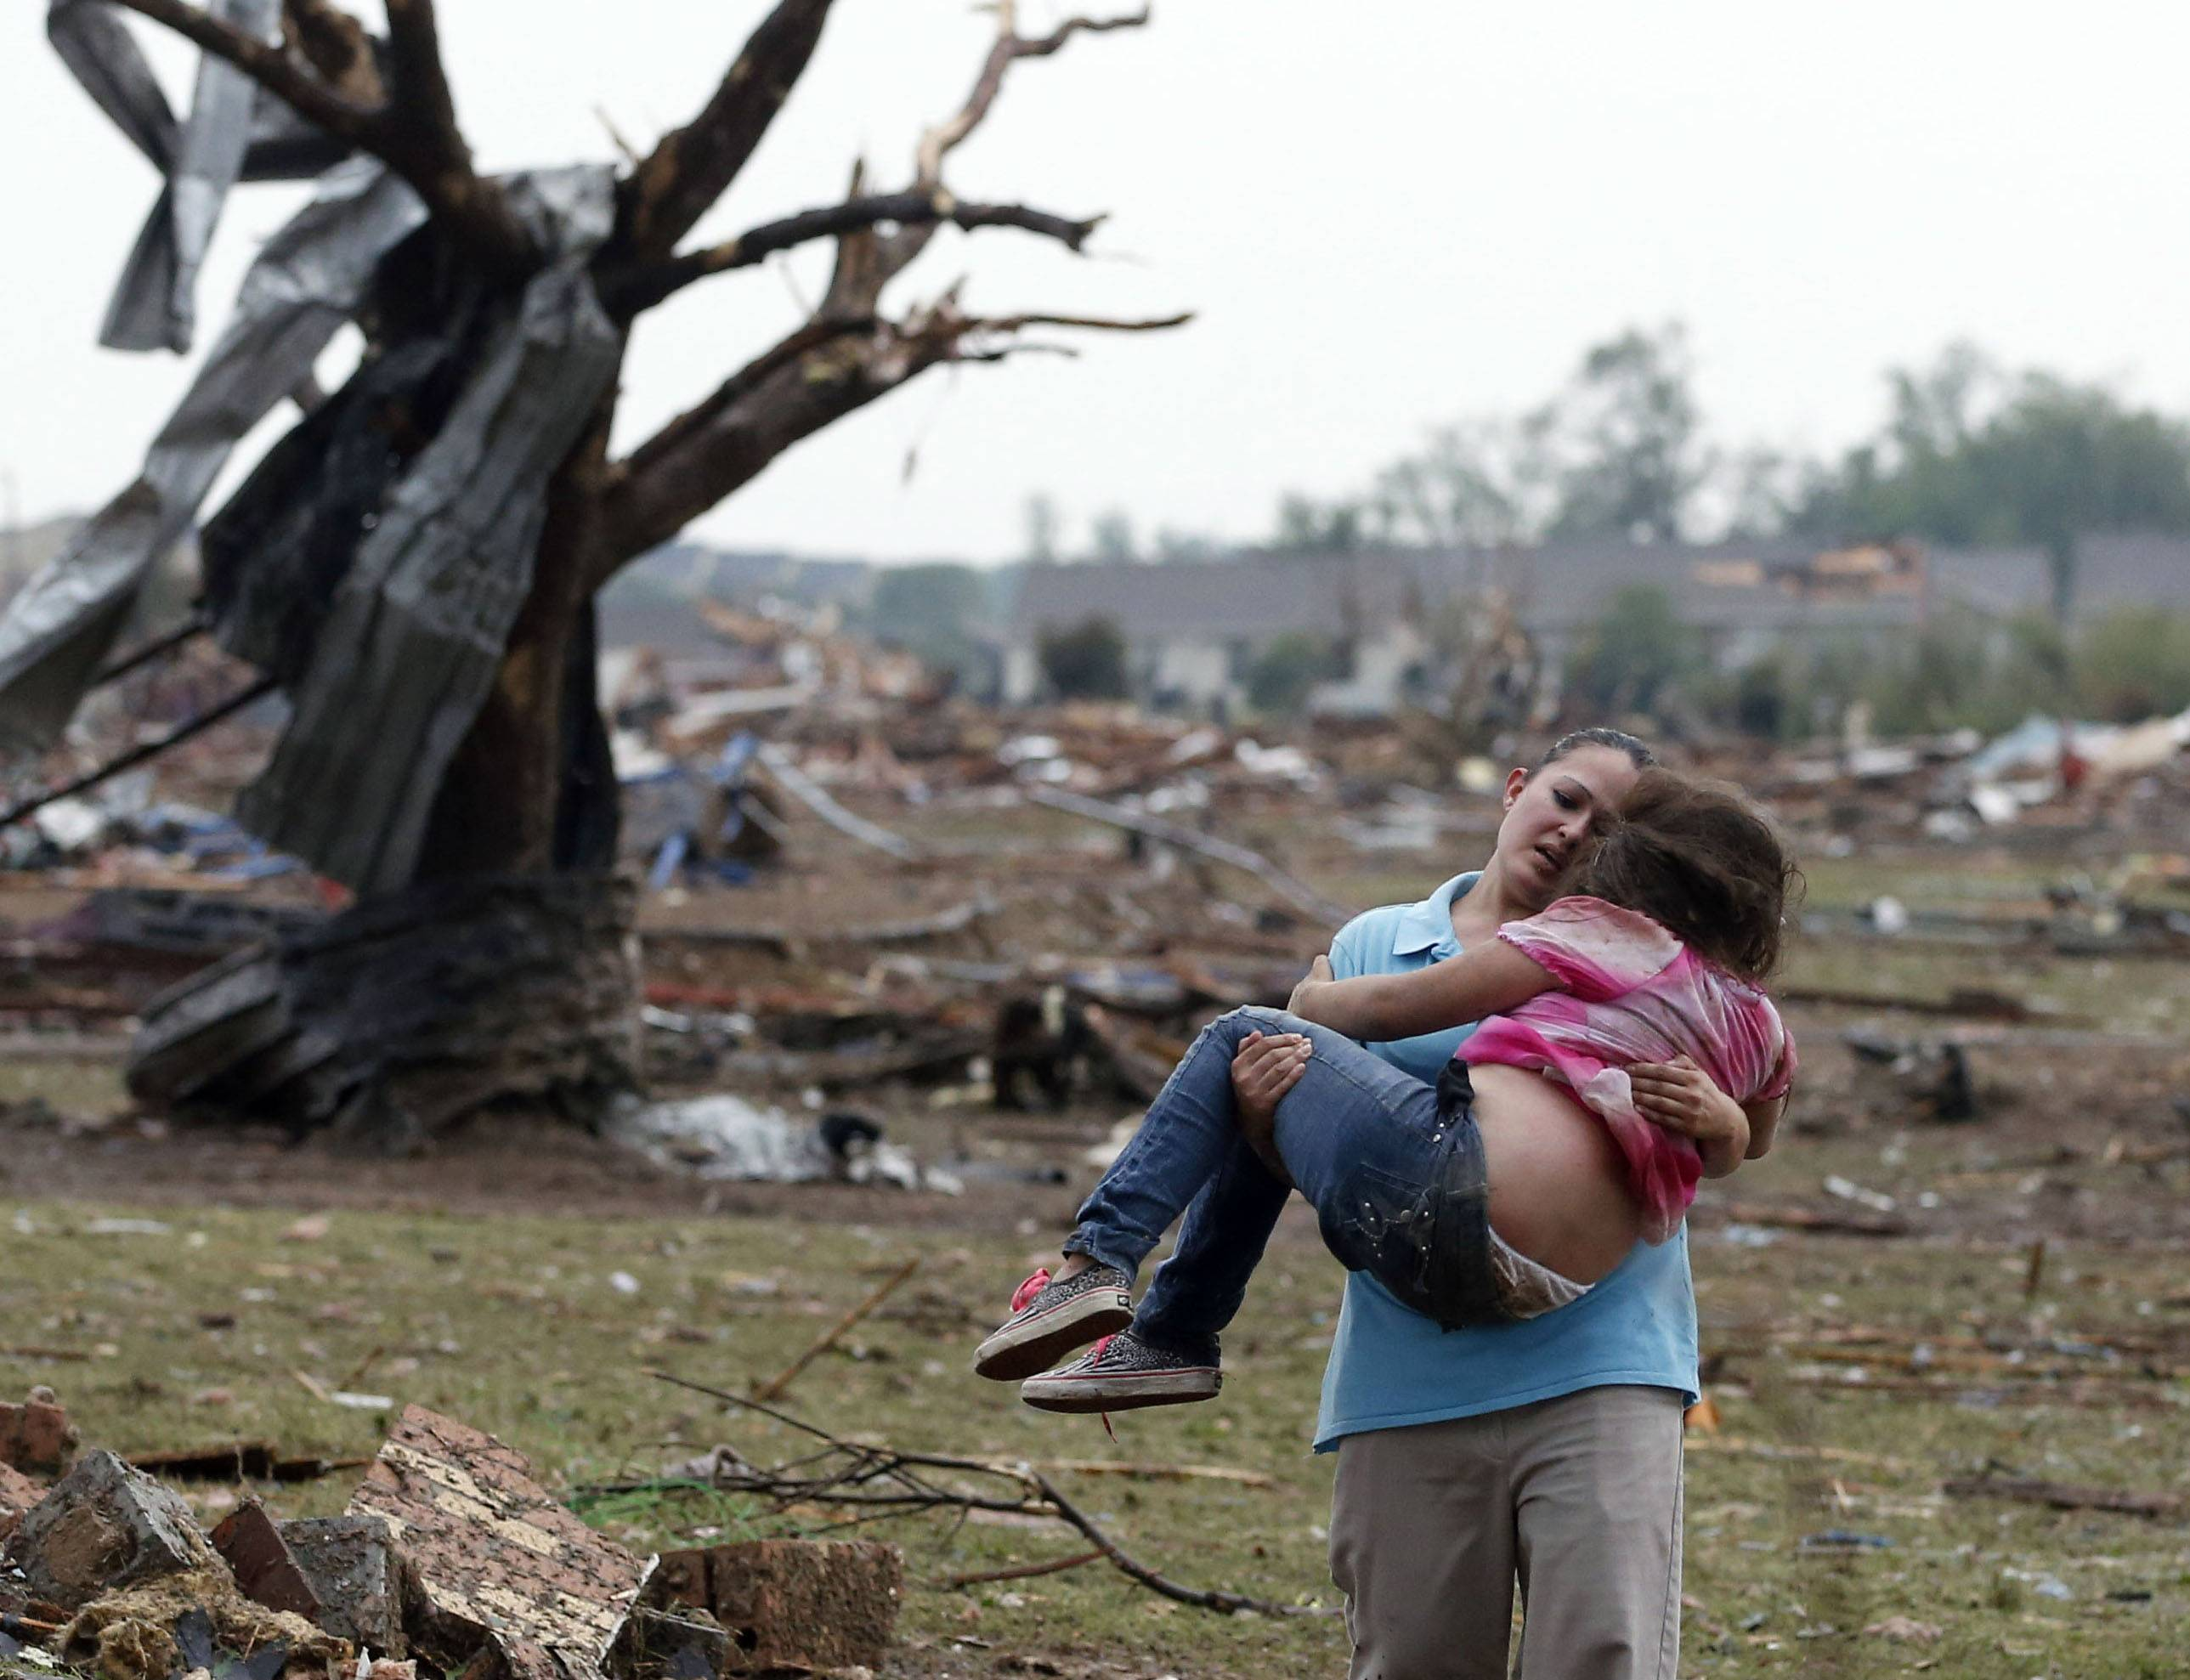 A woman carries a child through a field near the collapsed Plaza Towers Elementary School in Moore, Okla., Monday, May 20, 2013. The relationship between the woman and the child was not immediately known. A tornado as much as half a mile (.8 kilometers) wide with winds up to 200 mph (320 kph) roared through the Oklahoma City suburbs Monday